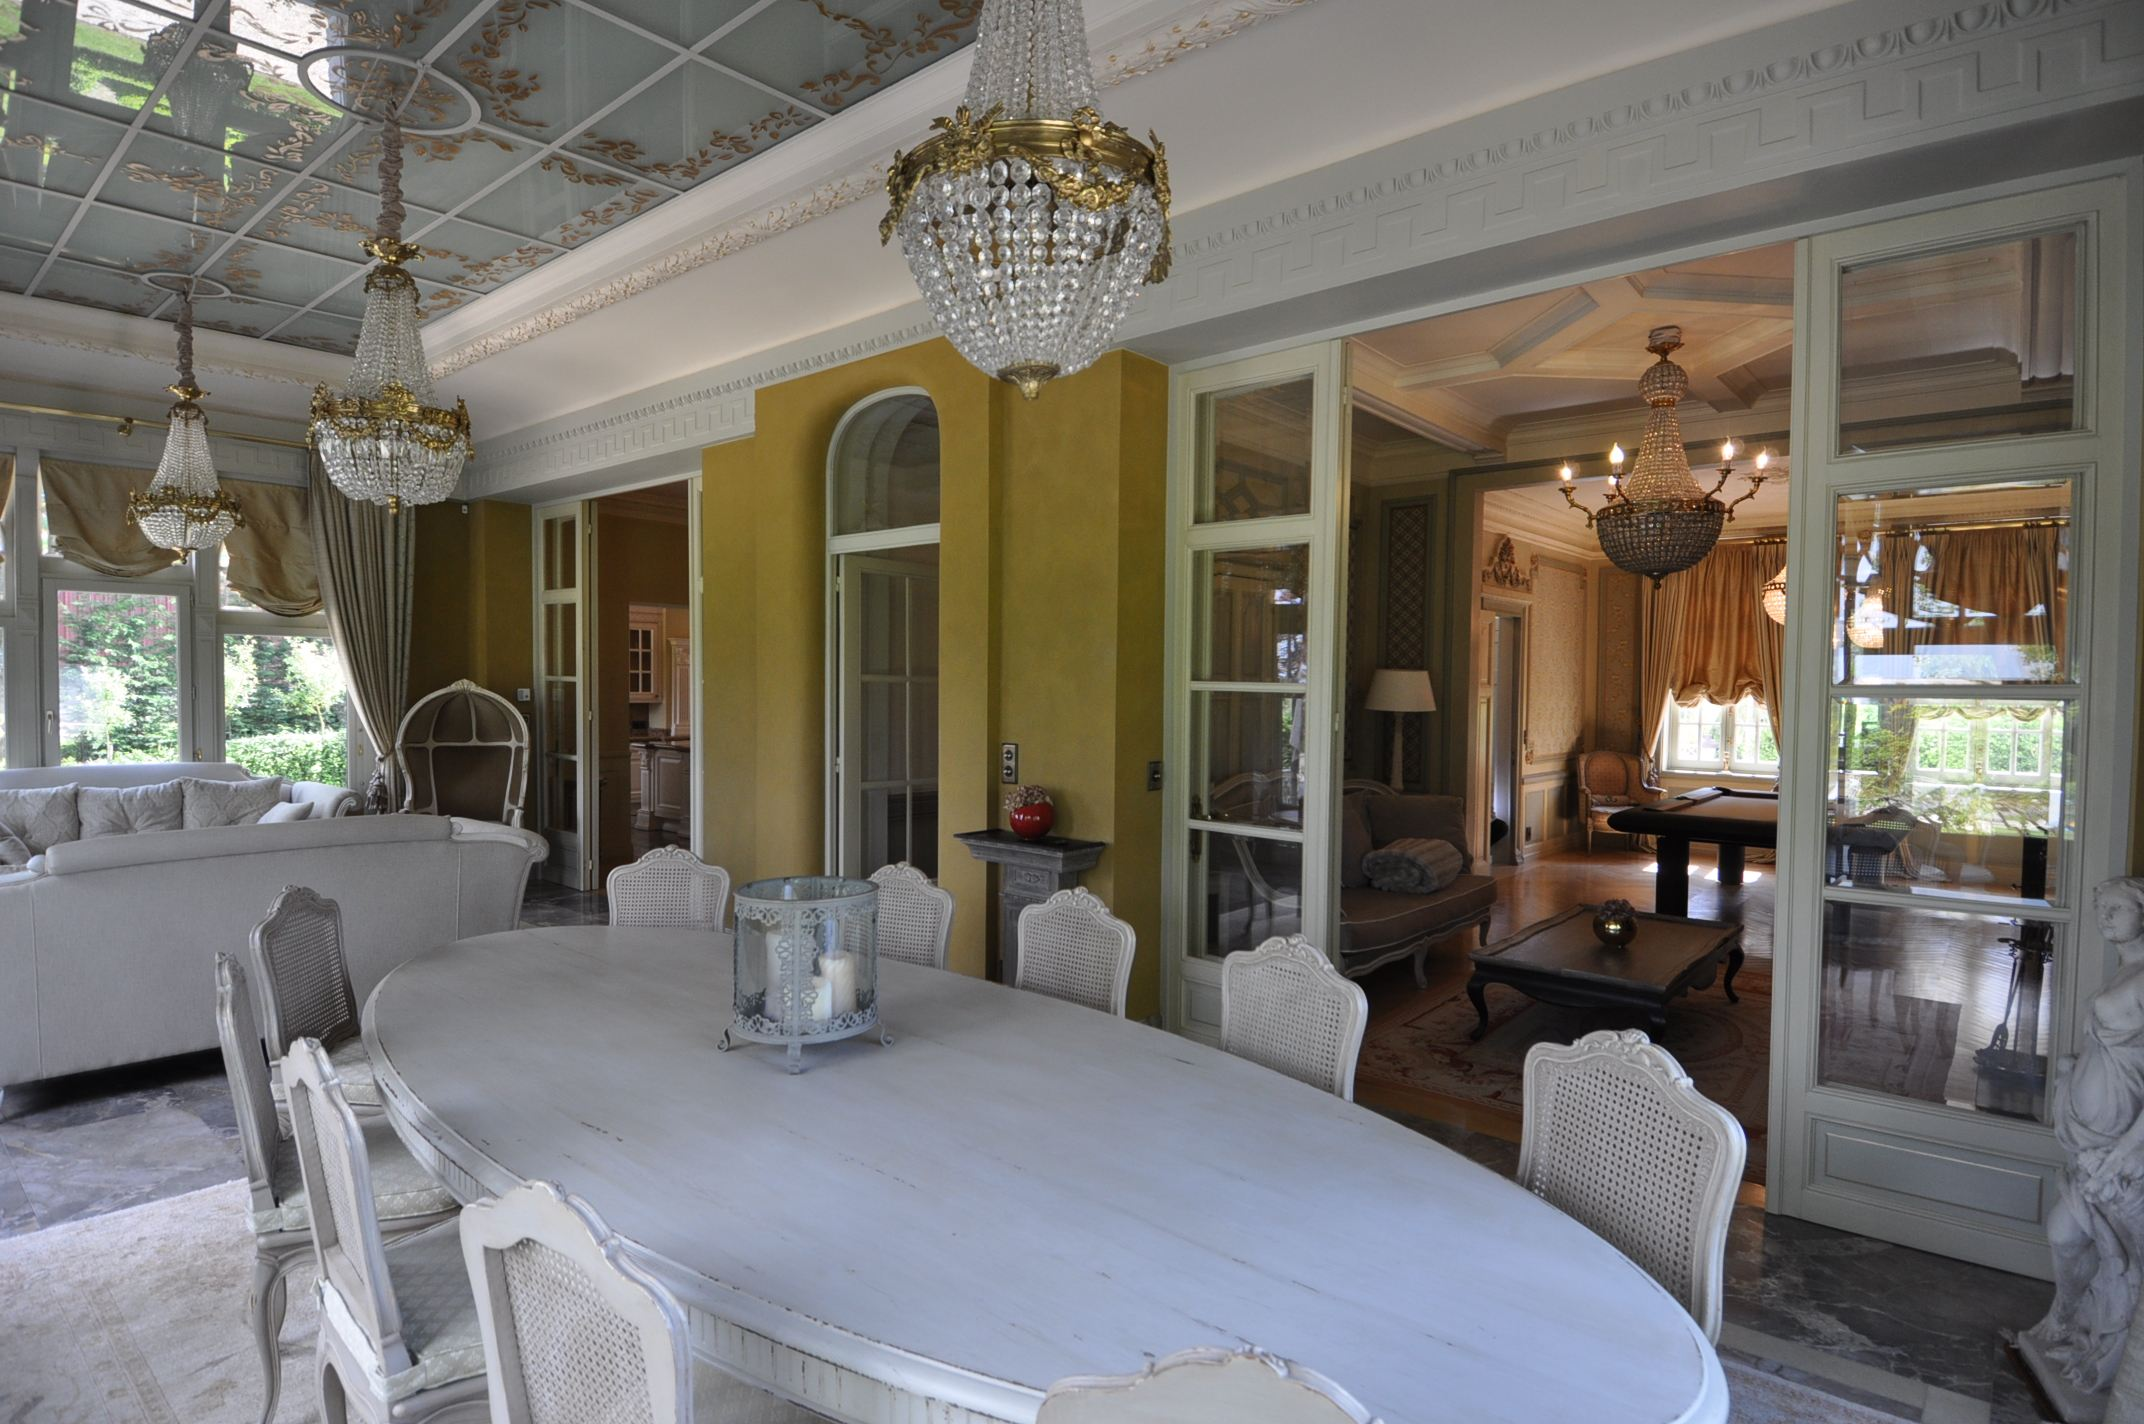 Property For Sale at THE PEVELE, Charming Mansion 460 m2 hab, 4 bedrooms, total luxury